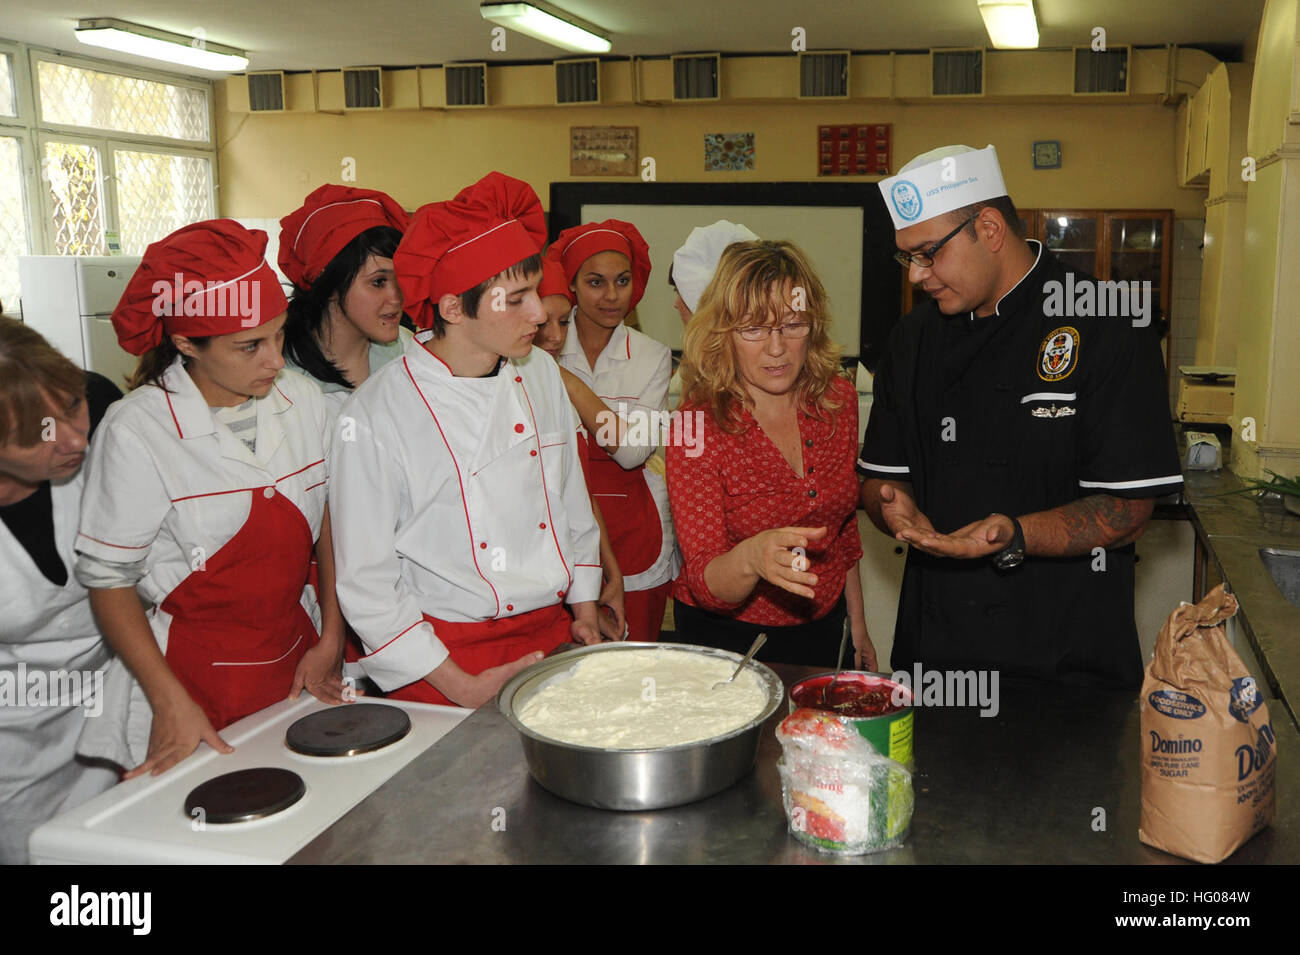 111026-N-RB564-028  BURGAS, Bulgaria (Oct. 26, 2011) Culinary Specialist 2nd Class Eber Barraza, assigned to the - Stock Image